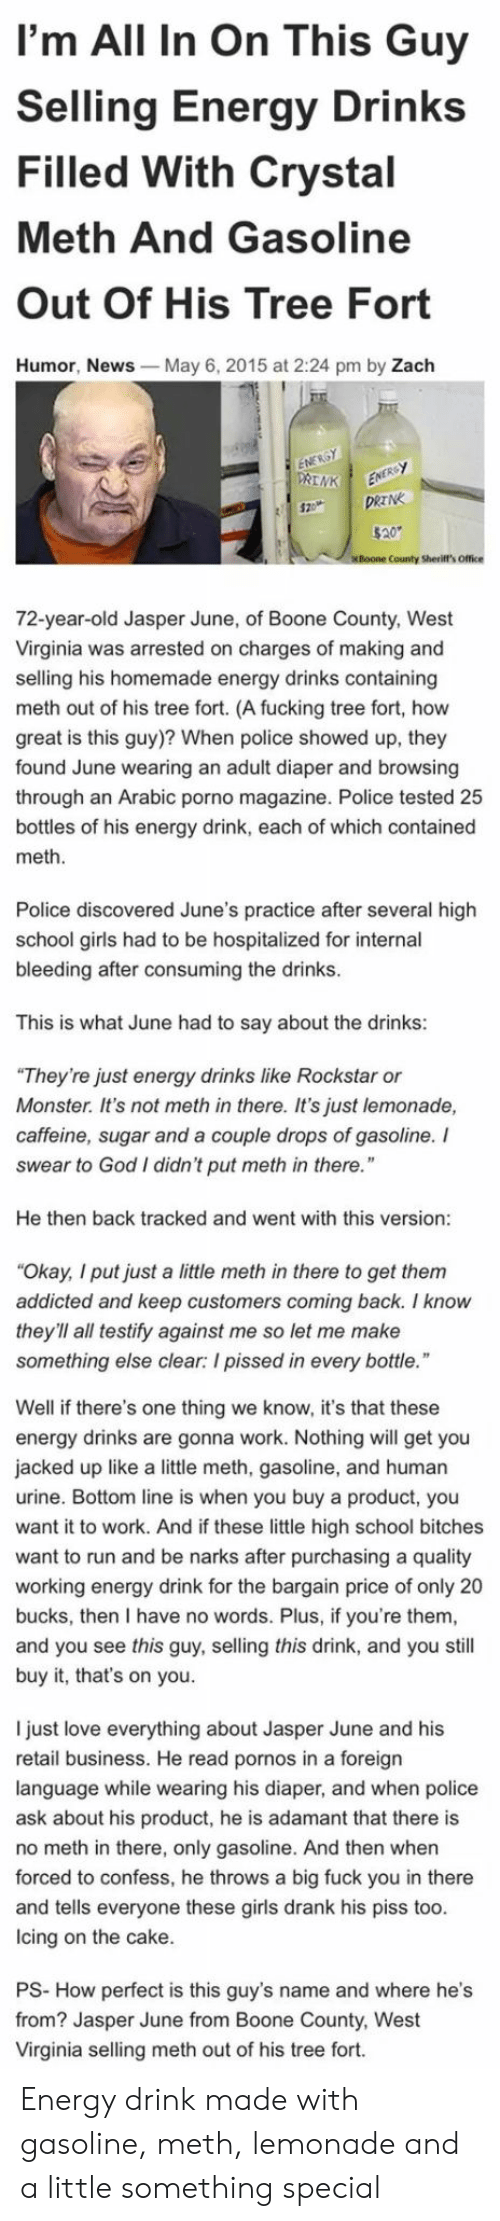 """crystal meth: I'm All In On This Guy  Selling Energy Drinks  Filled With Crystal  Meth And Gasoline  Out Of His Tree Fort  Humor, News  May 6, 2015 at 2:24 pm by Zach  County Sherift's Office  72-year-old Jasper June, of Boone County, West  Virginia was arrested on charges of making and  selling his homemade energy drinks containing  meth out of his tree fort. (A fucking tree fort, how  great is this guy)? When police showed up, they  found June wearing an adult diaper and browsing  through an Arabic porno magazine. Police tested 25  bottles of his energy drink, each of which contained  meth  Police discovered June's practice after several high  school girls had to be hospitalized for internal  bleeding after consuming the drinks  This is what June had to say about the drinks:  They're just energy drinks like Rockstar or  Monster. It's not meth in there. It's just lemonade,  caffeine, sugar and a couple drops of gasoline. I  swear to God I didn't put meth in there.""""  He then back tracked and went with this version  Okay, I put just a little meth in there to get them  addicted and keep customers coming back. I know  they'll all testify against me so let me make  something else clear: I pissed in every bottle  Well if there's one thing we know, it's that these  energy drinks are gonna work. Nothing will get you  jacked up like a little meth, gasoline, and human  urine. Bottom line is when you buy a product, you  want it to work. And if these little high school bitches  want to run and be narks after purchasing a quality  working energy drink for the bargain price of only 20  bucks, then I have no words. Plus, if you're them  and you see this guy, selling this drink, and you still  buy it, that's on you.  I just love everything about Jasper June and his  retail business. He read pornos in a foreign  language while wearing his diaper, and when police  ask about his product, he is adamant that there is  no meth in there, only gasoline. And then when  forced to confess, h"""